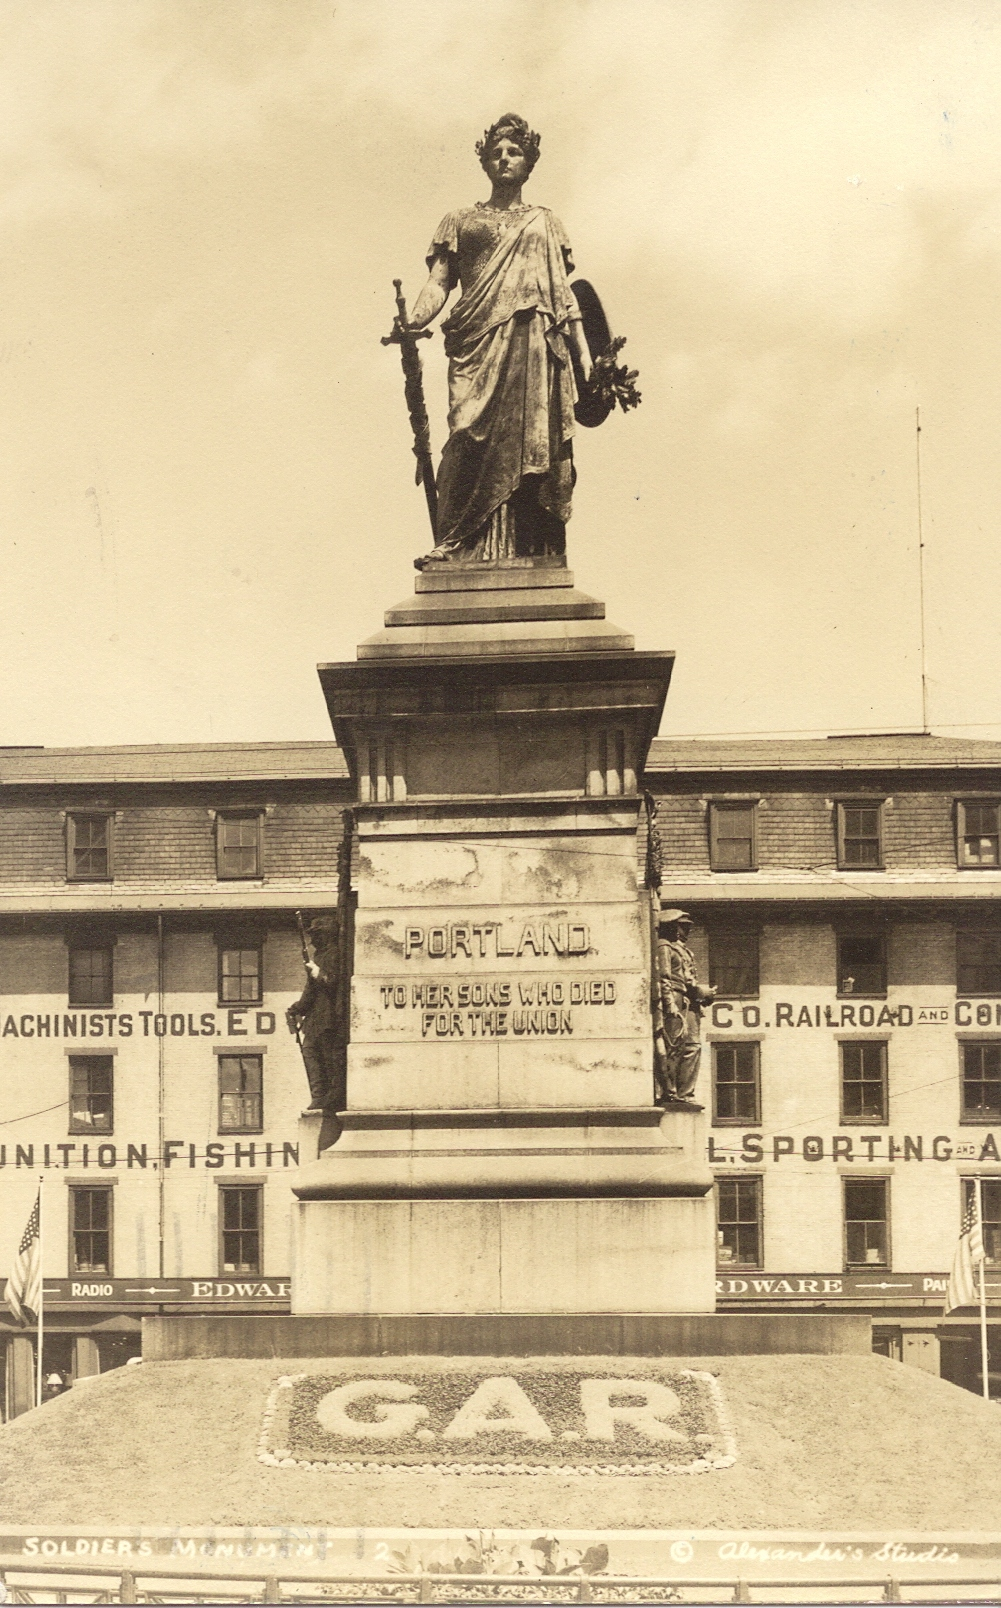 Postcard from 1939 showing the monument